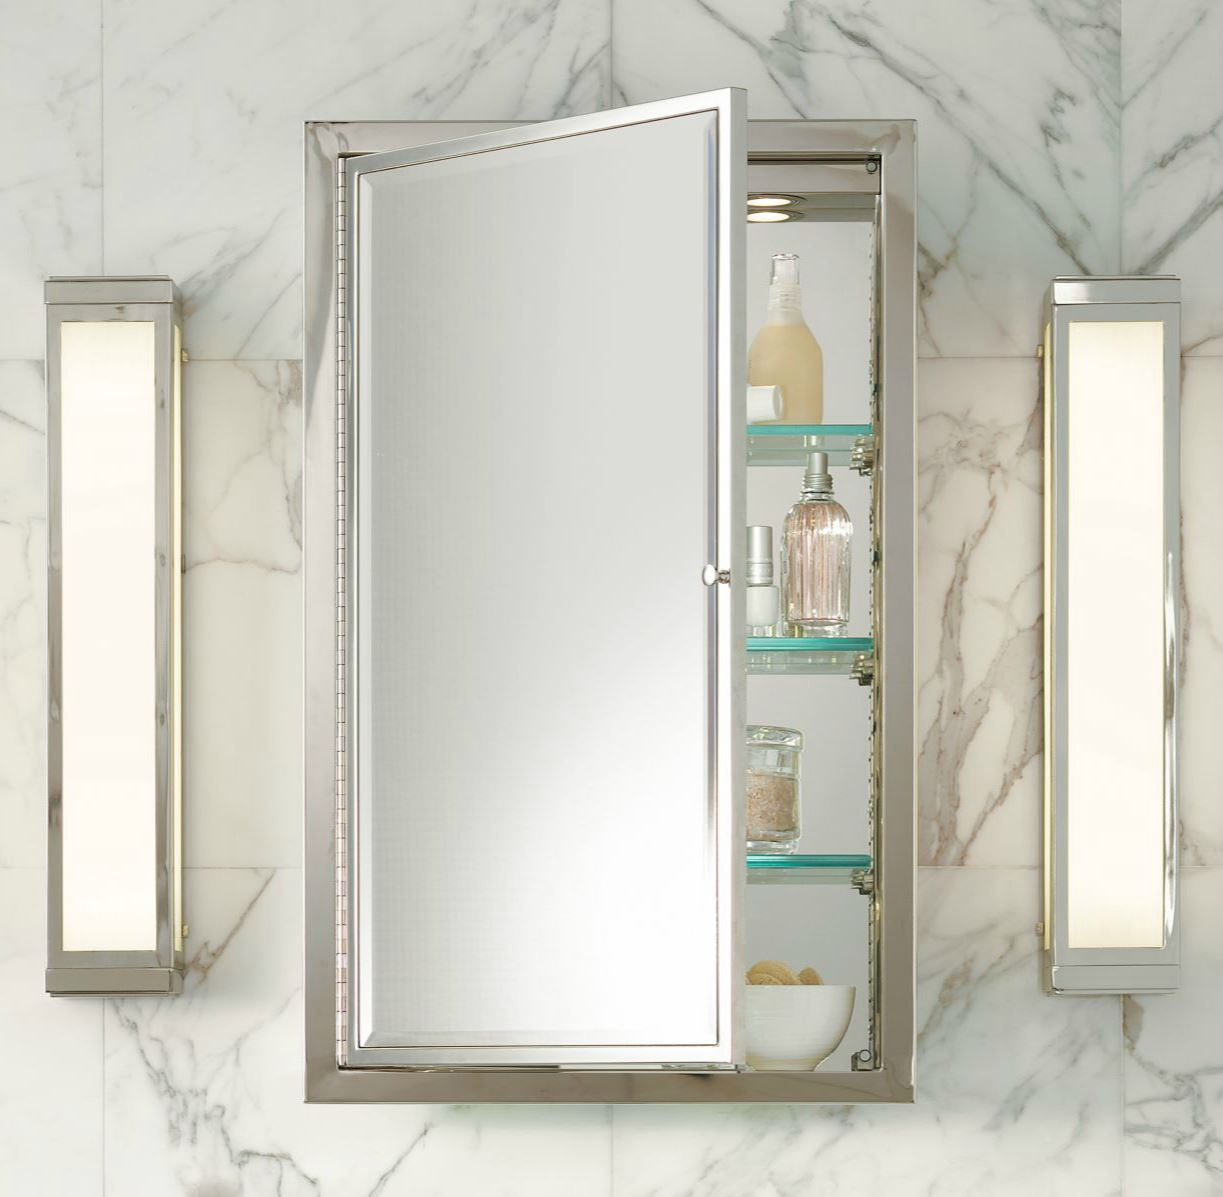 Recessed Shaving Cabinets 20 Tips For An Organized Bathroom